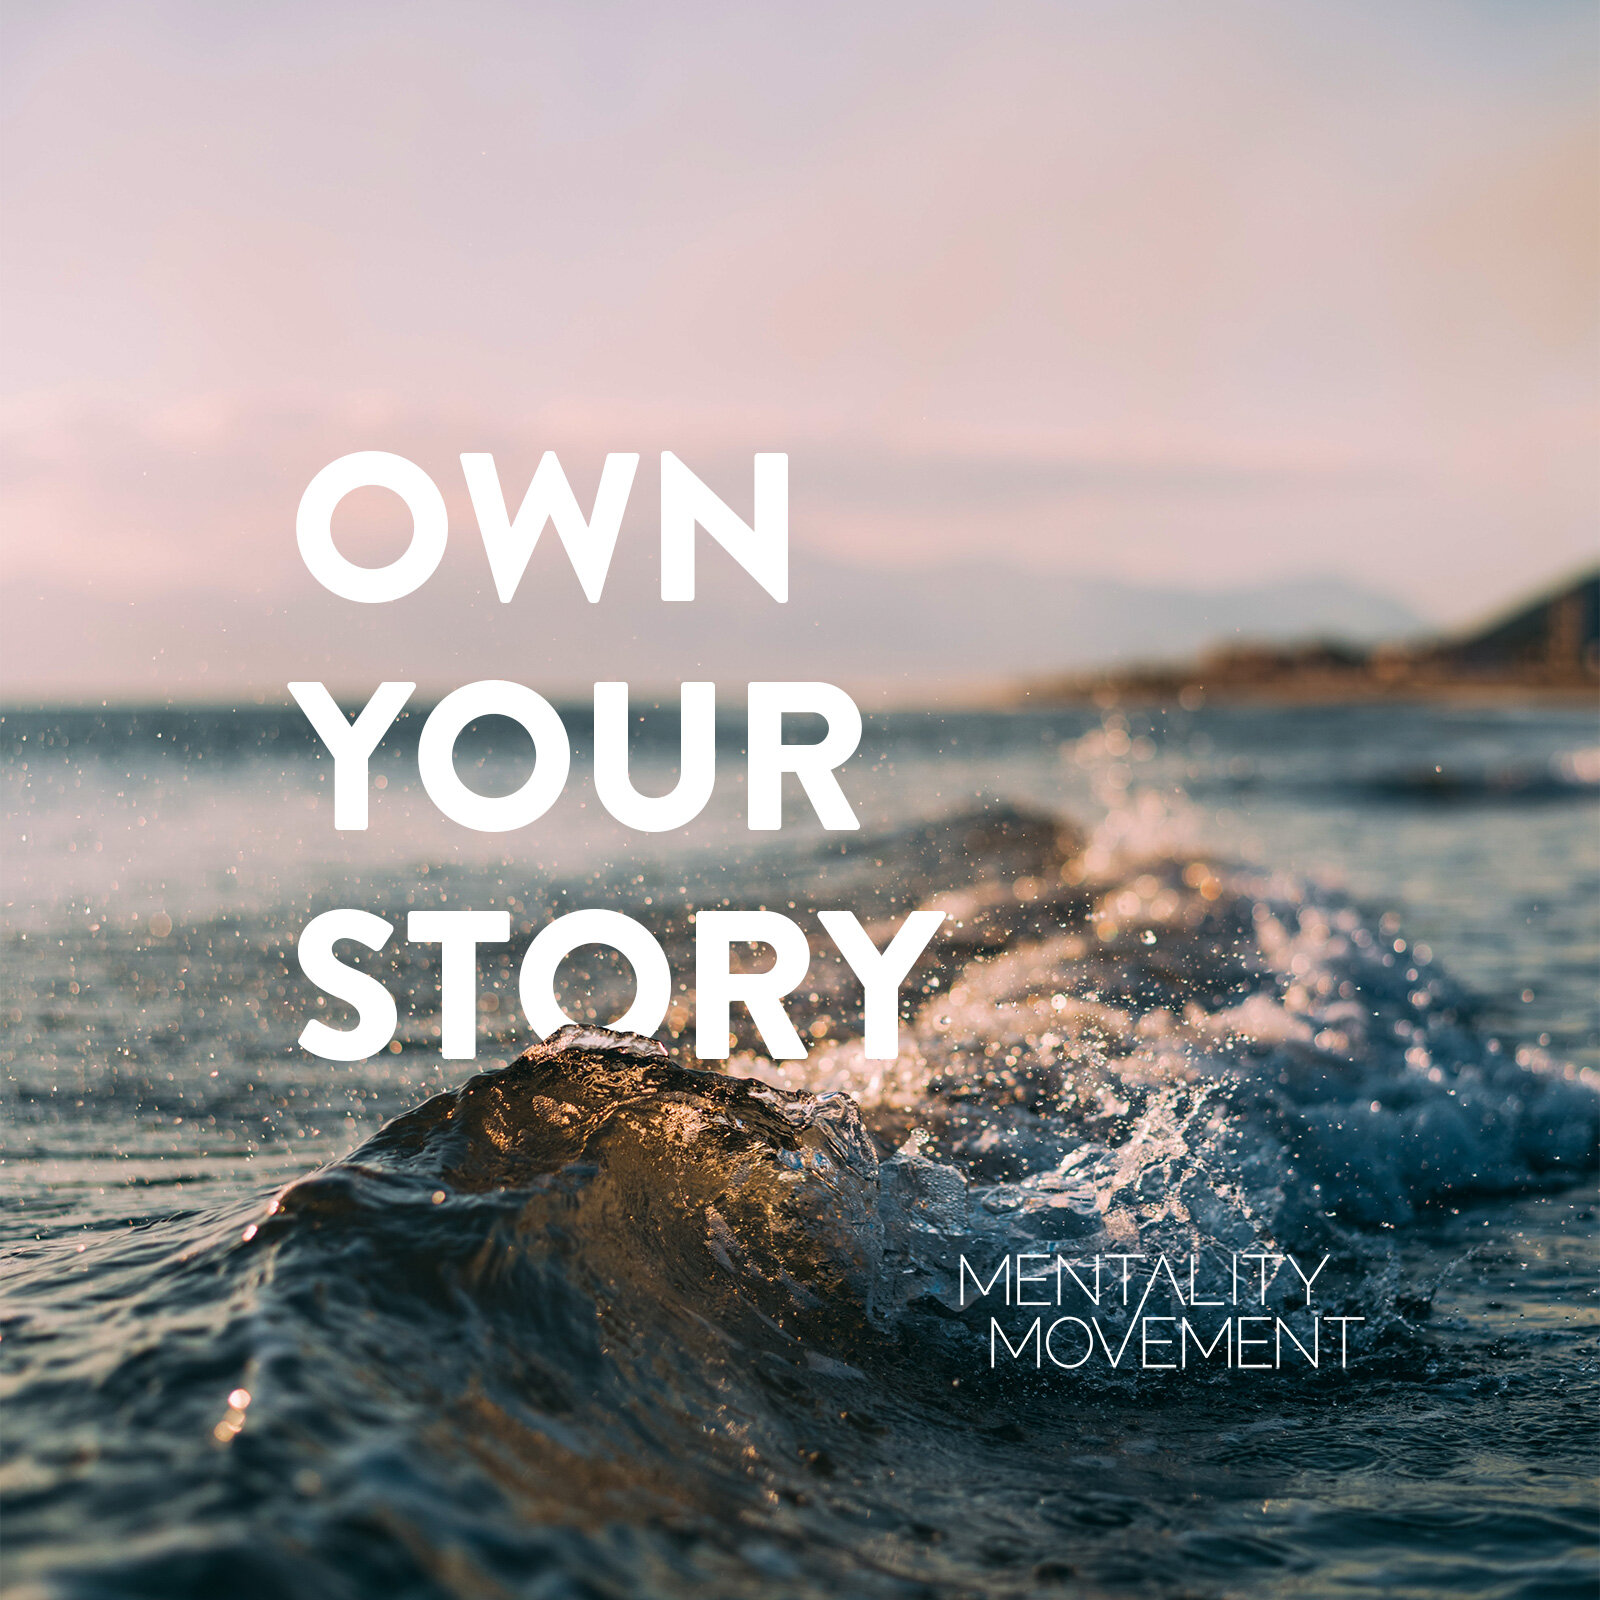 Social Media Marketing Mentality Movement Wave Own Your Story.jpg